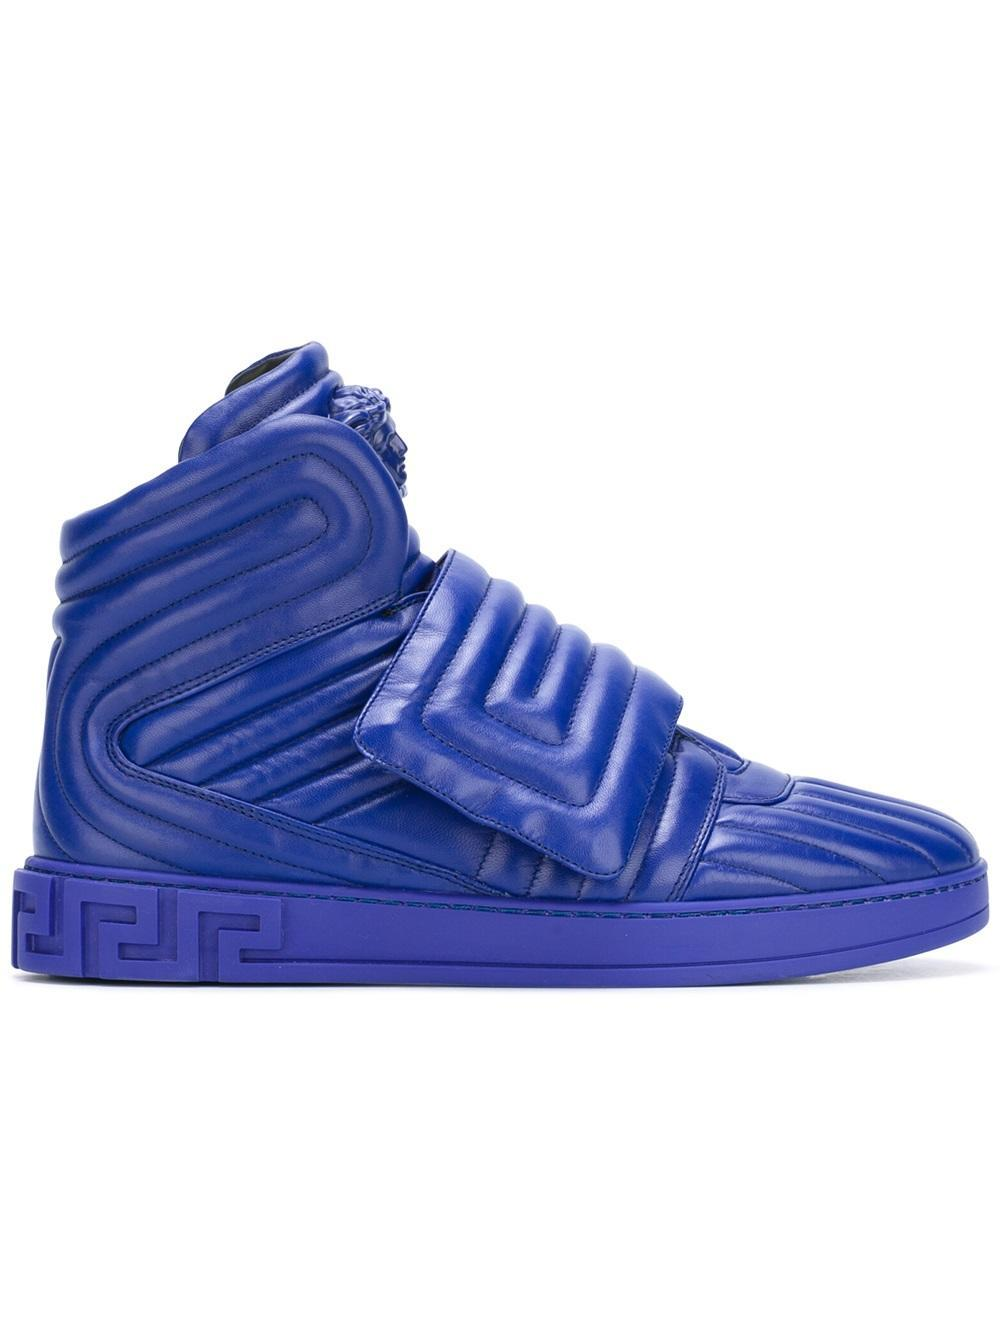 lyst versace palazzo medusa quilted hitop sneakers in